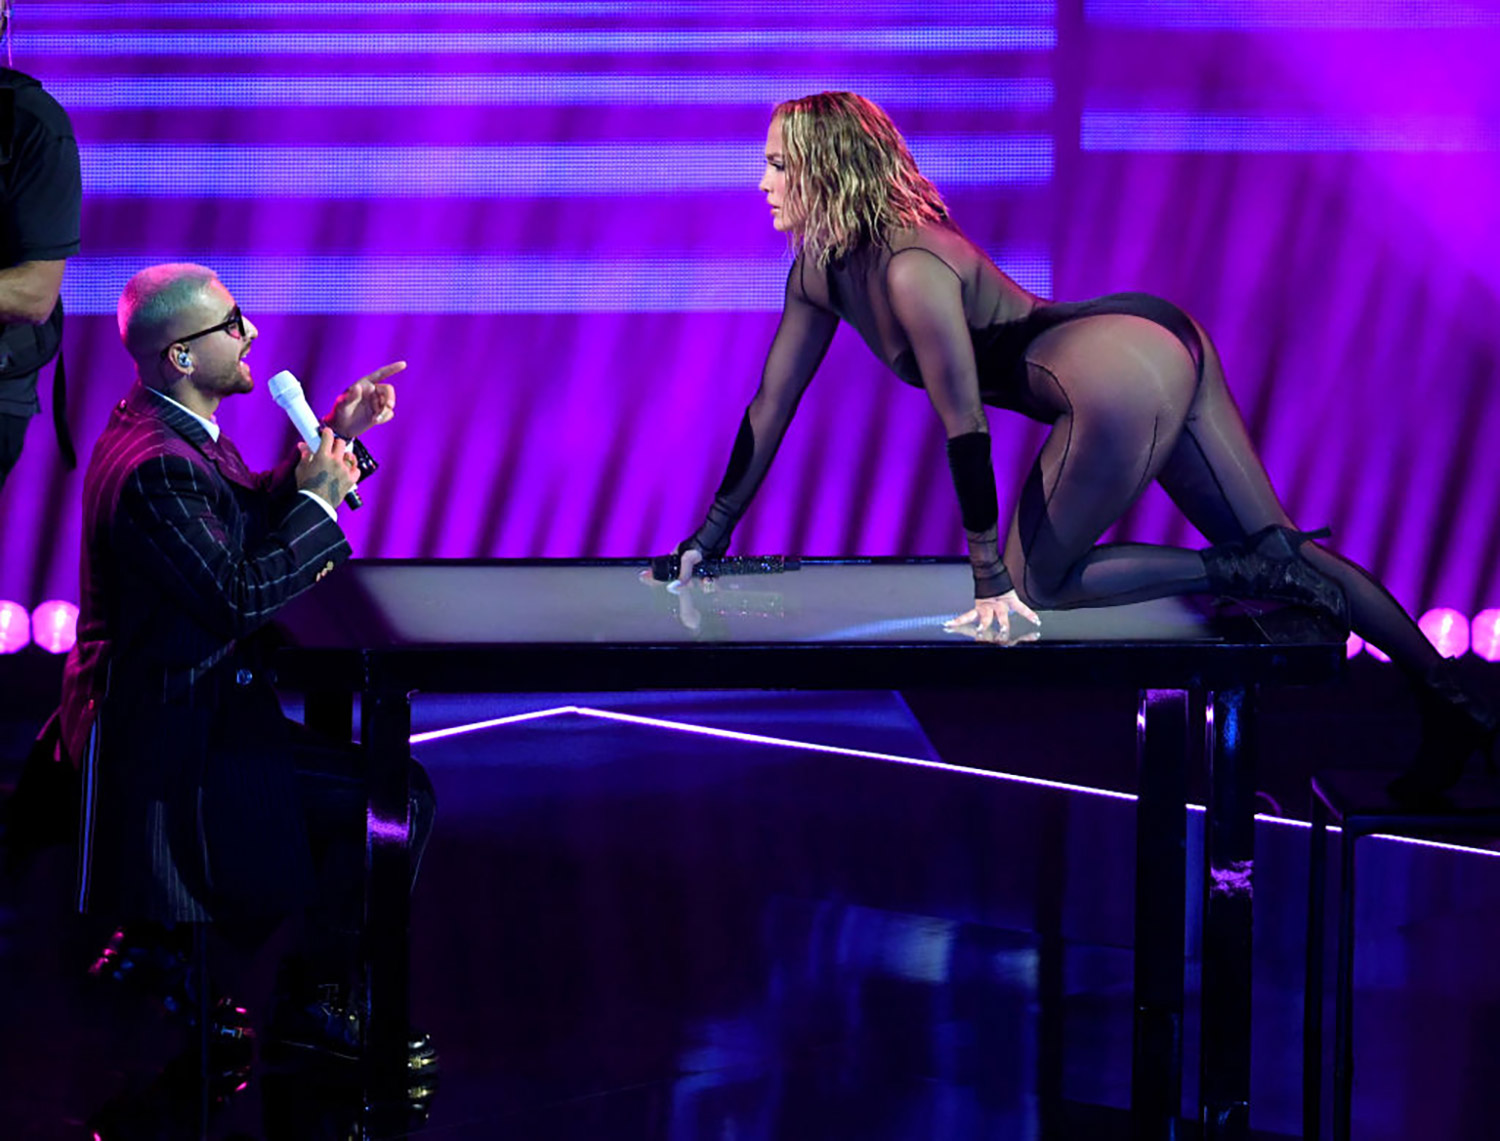 Jennifer Lopez and Maluma Give Steamy Performance of 'Pa' Ti' and 'Lonely' at 2020 AMAs